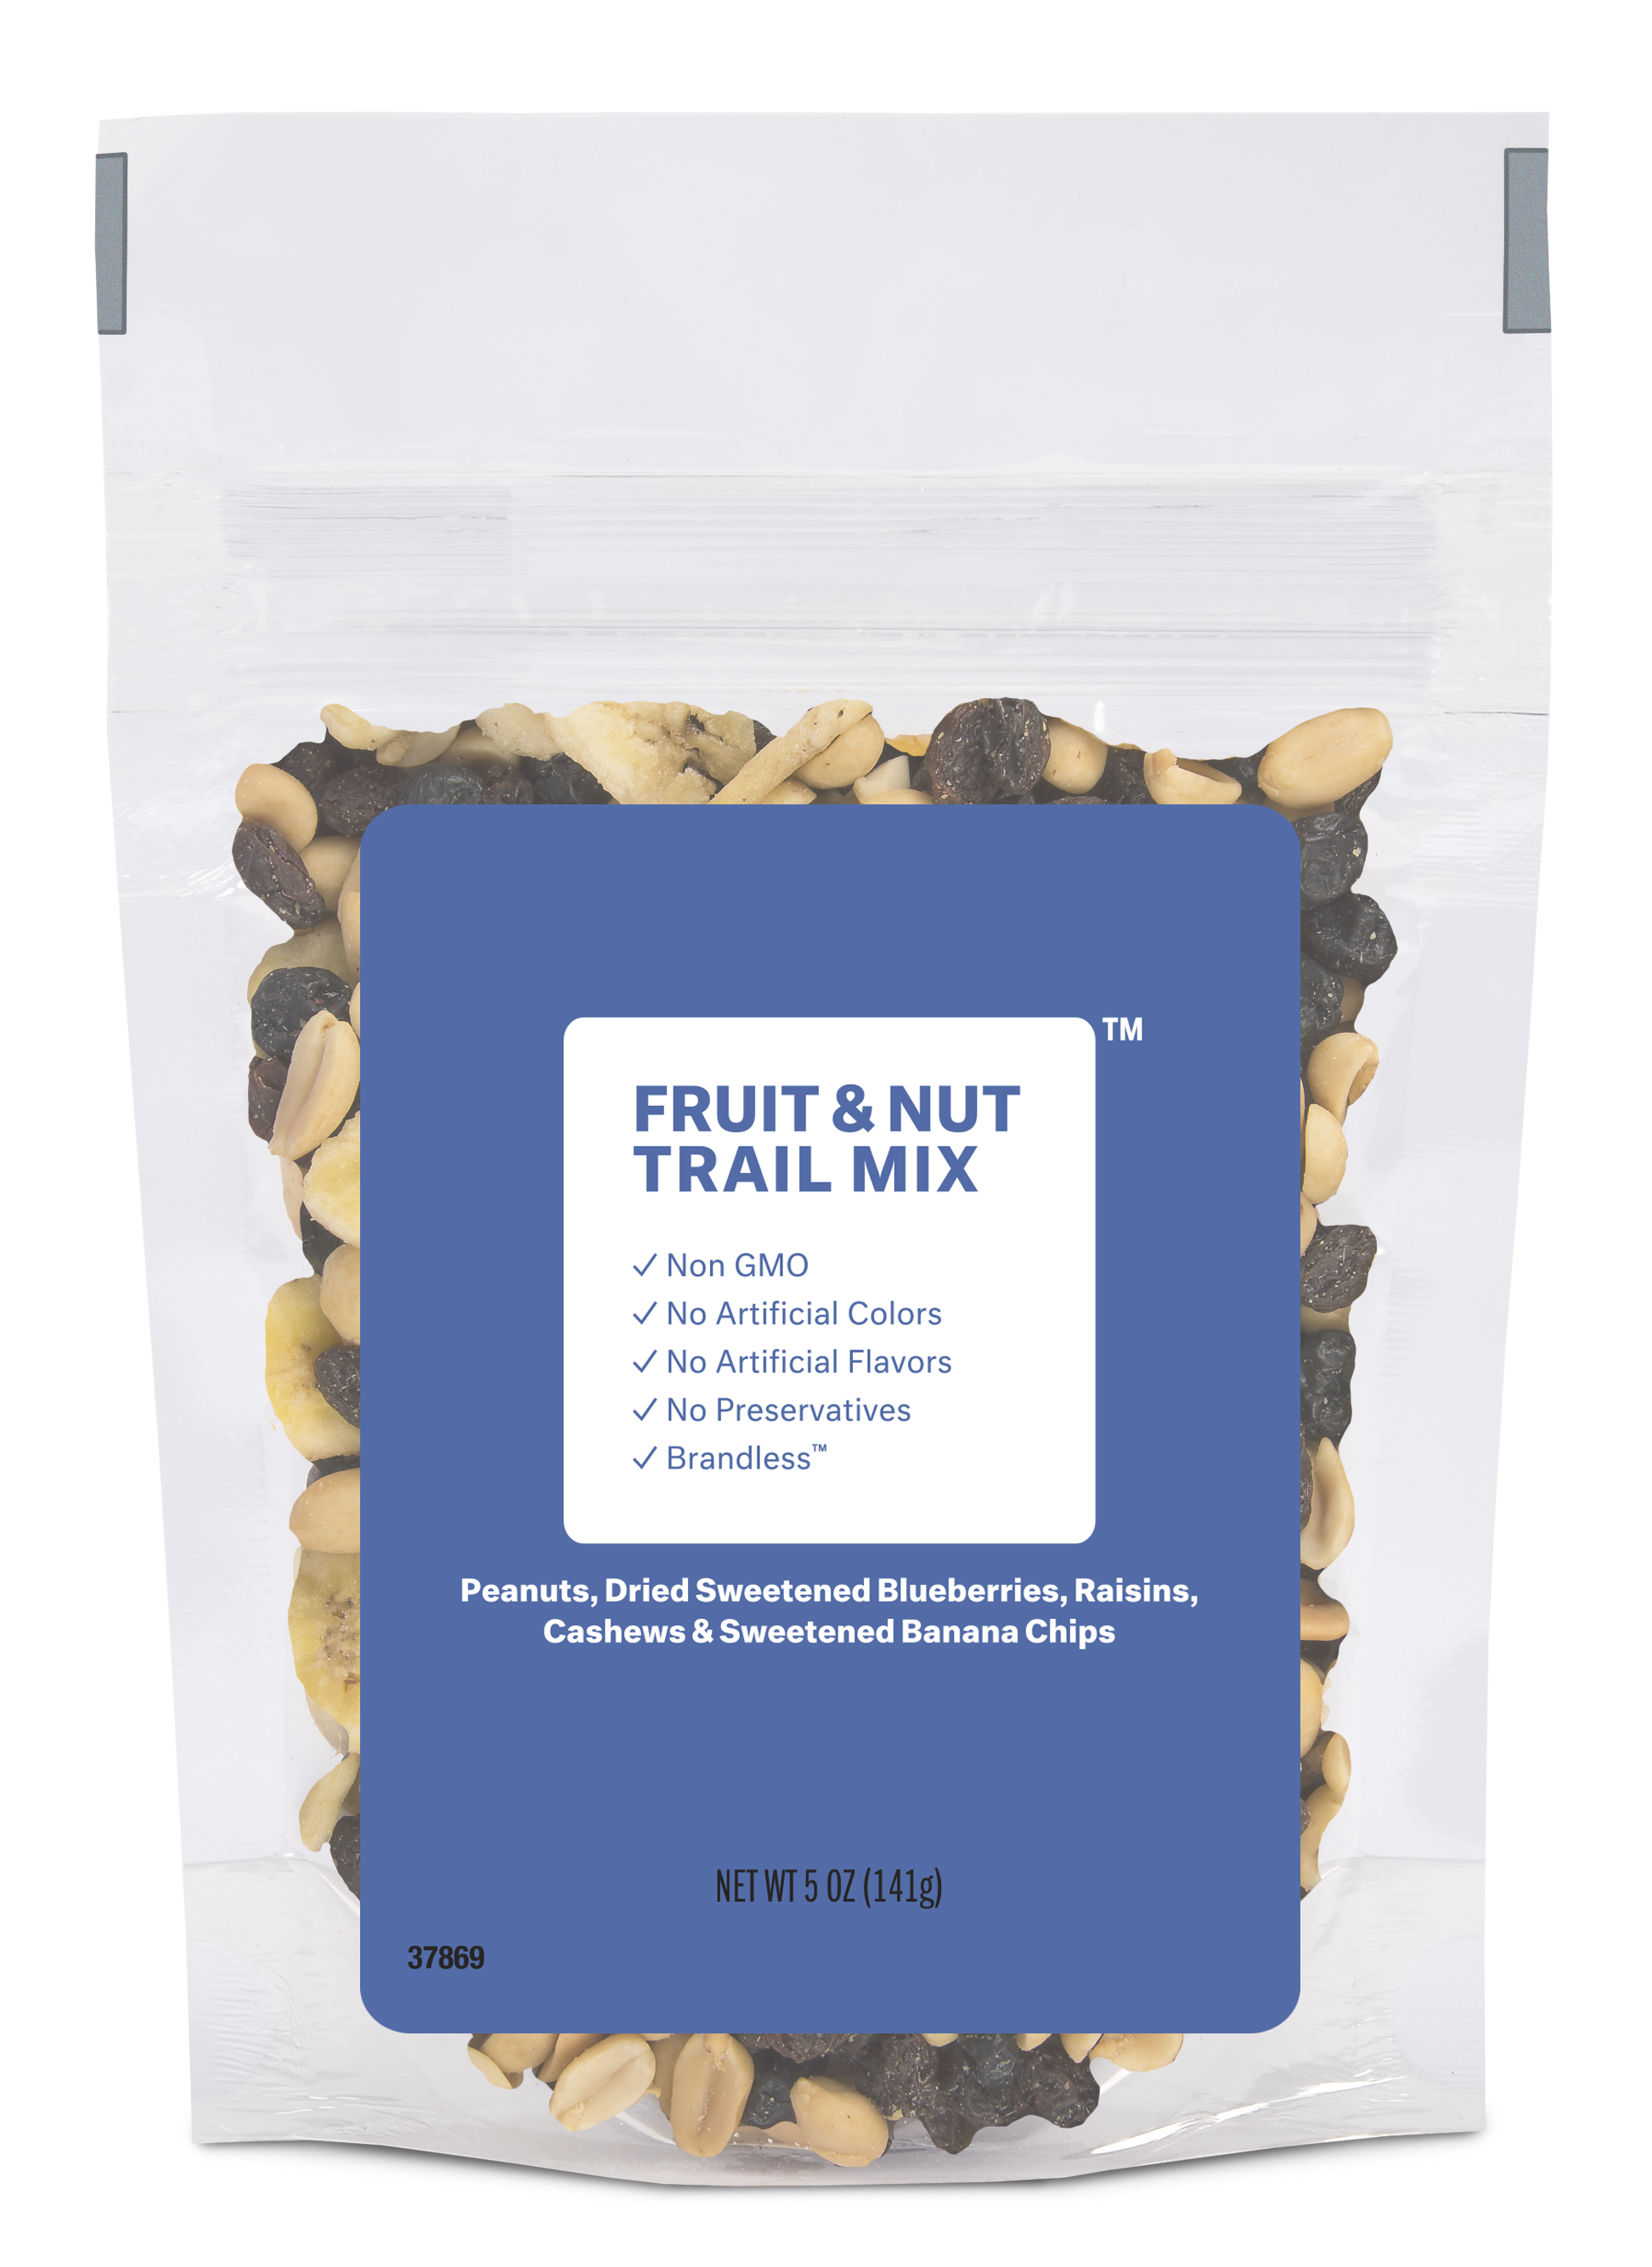 Brandless: Fruit & Nut Trail Mix